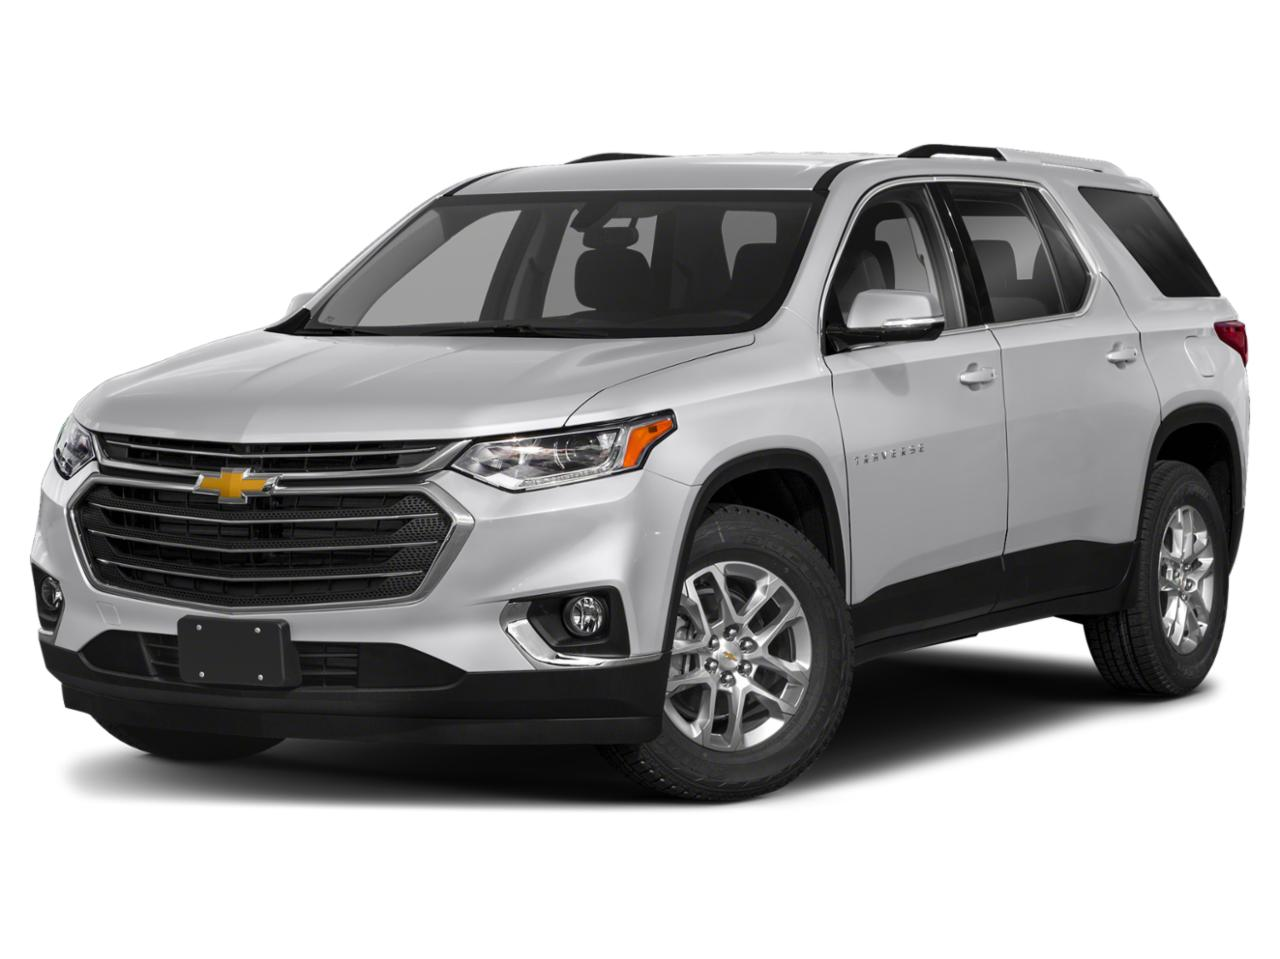 2019 Chevrolet Traverse LT SUV Slide